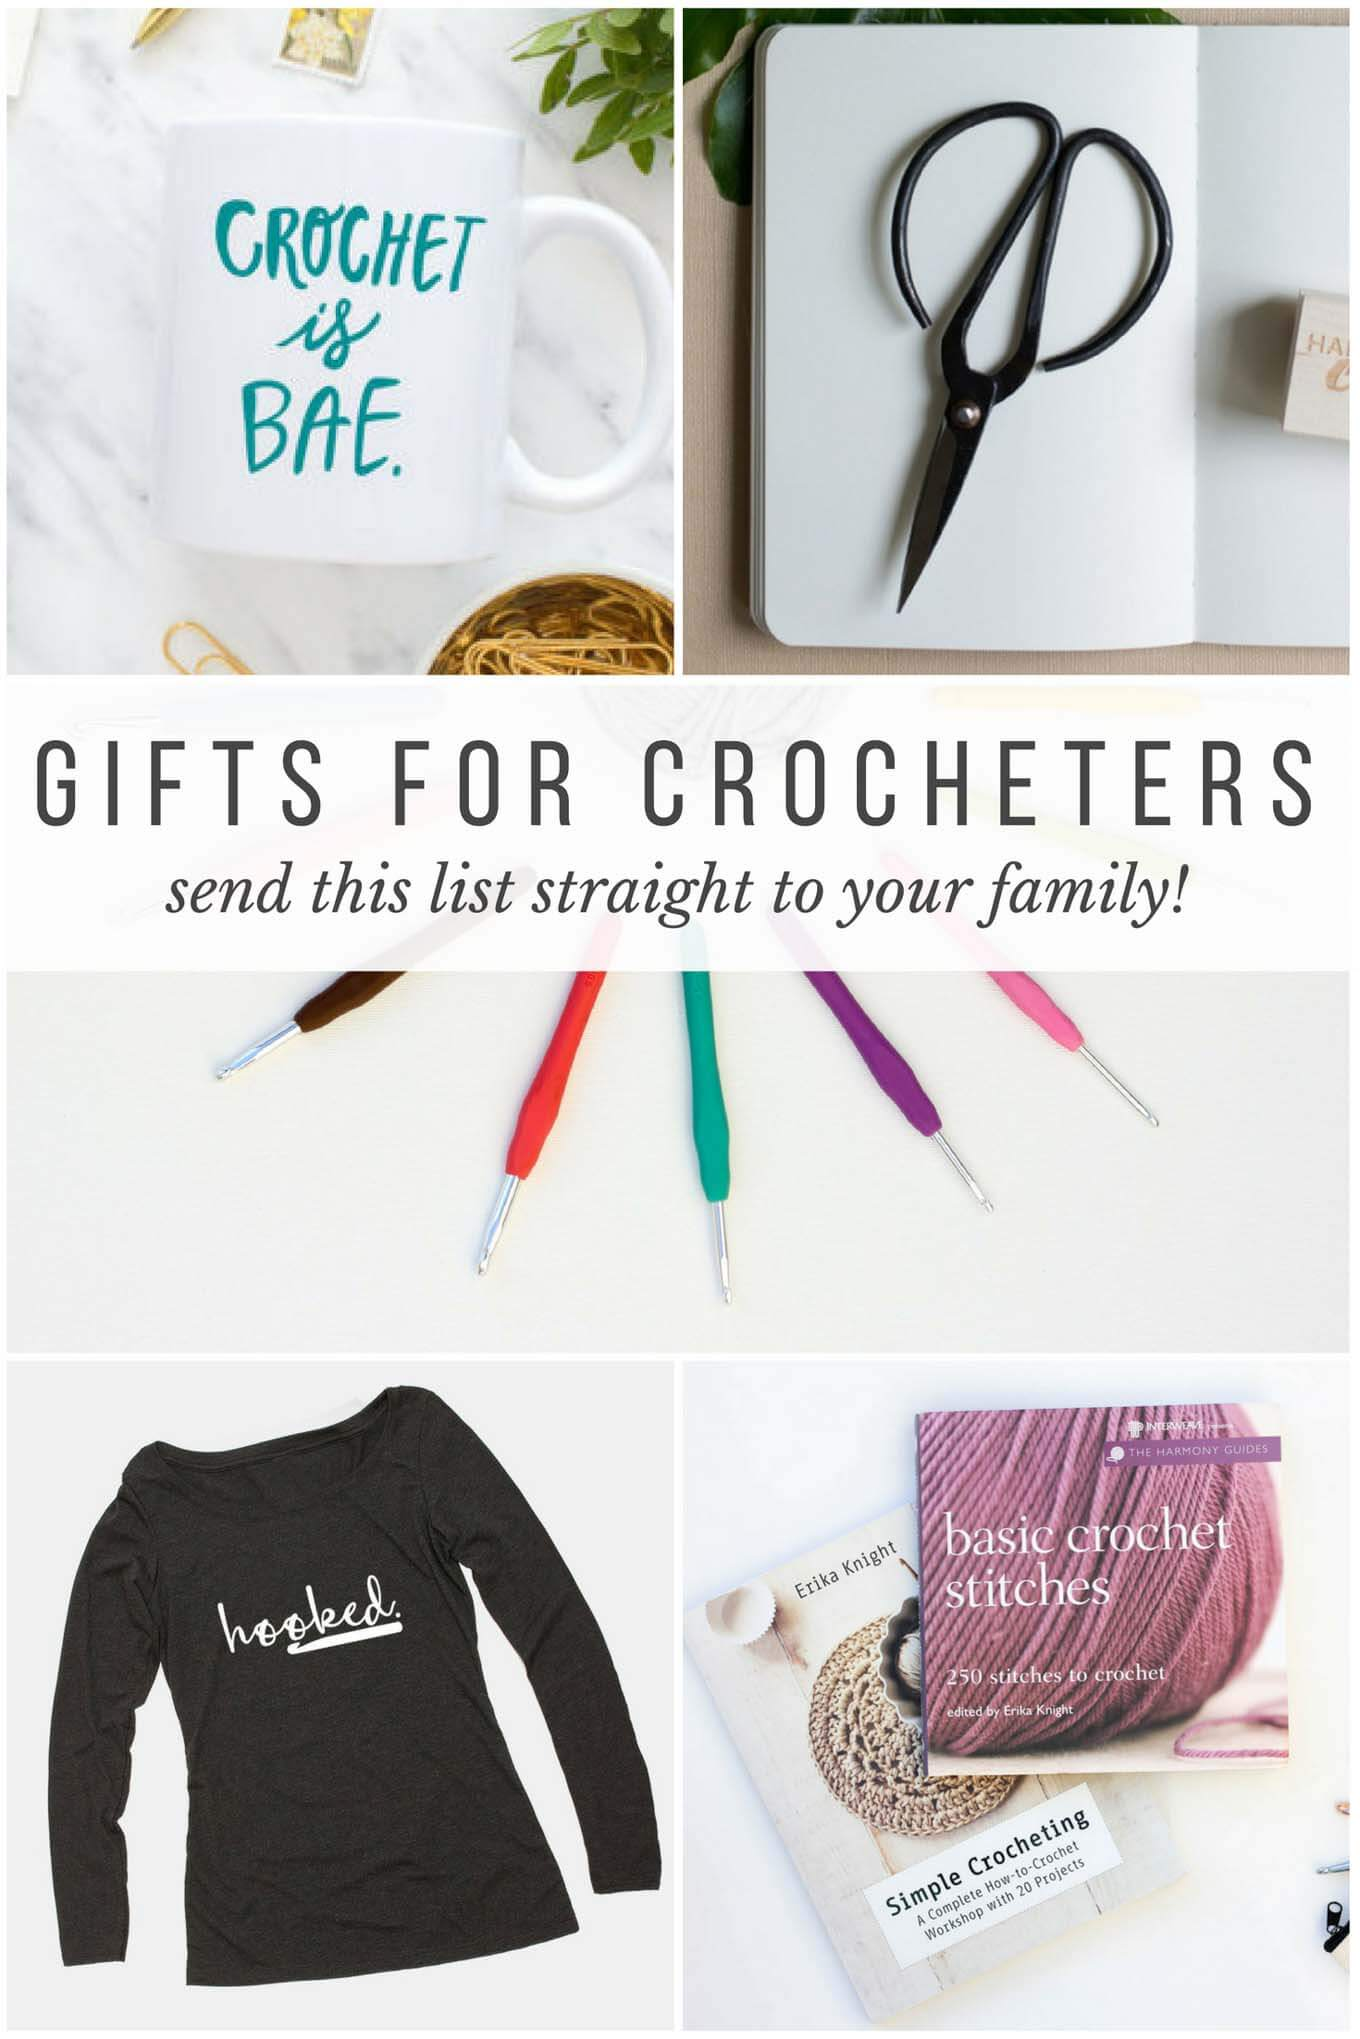 Wondering what to get your favorite crocheter for Christmas, Mother's Day or their birthday? From hooks to books, this list of gifts for crocheters has you covered! Click to view the entire crochet gift guide.